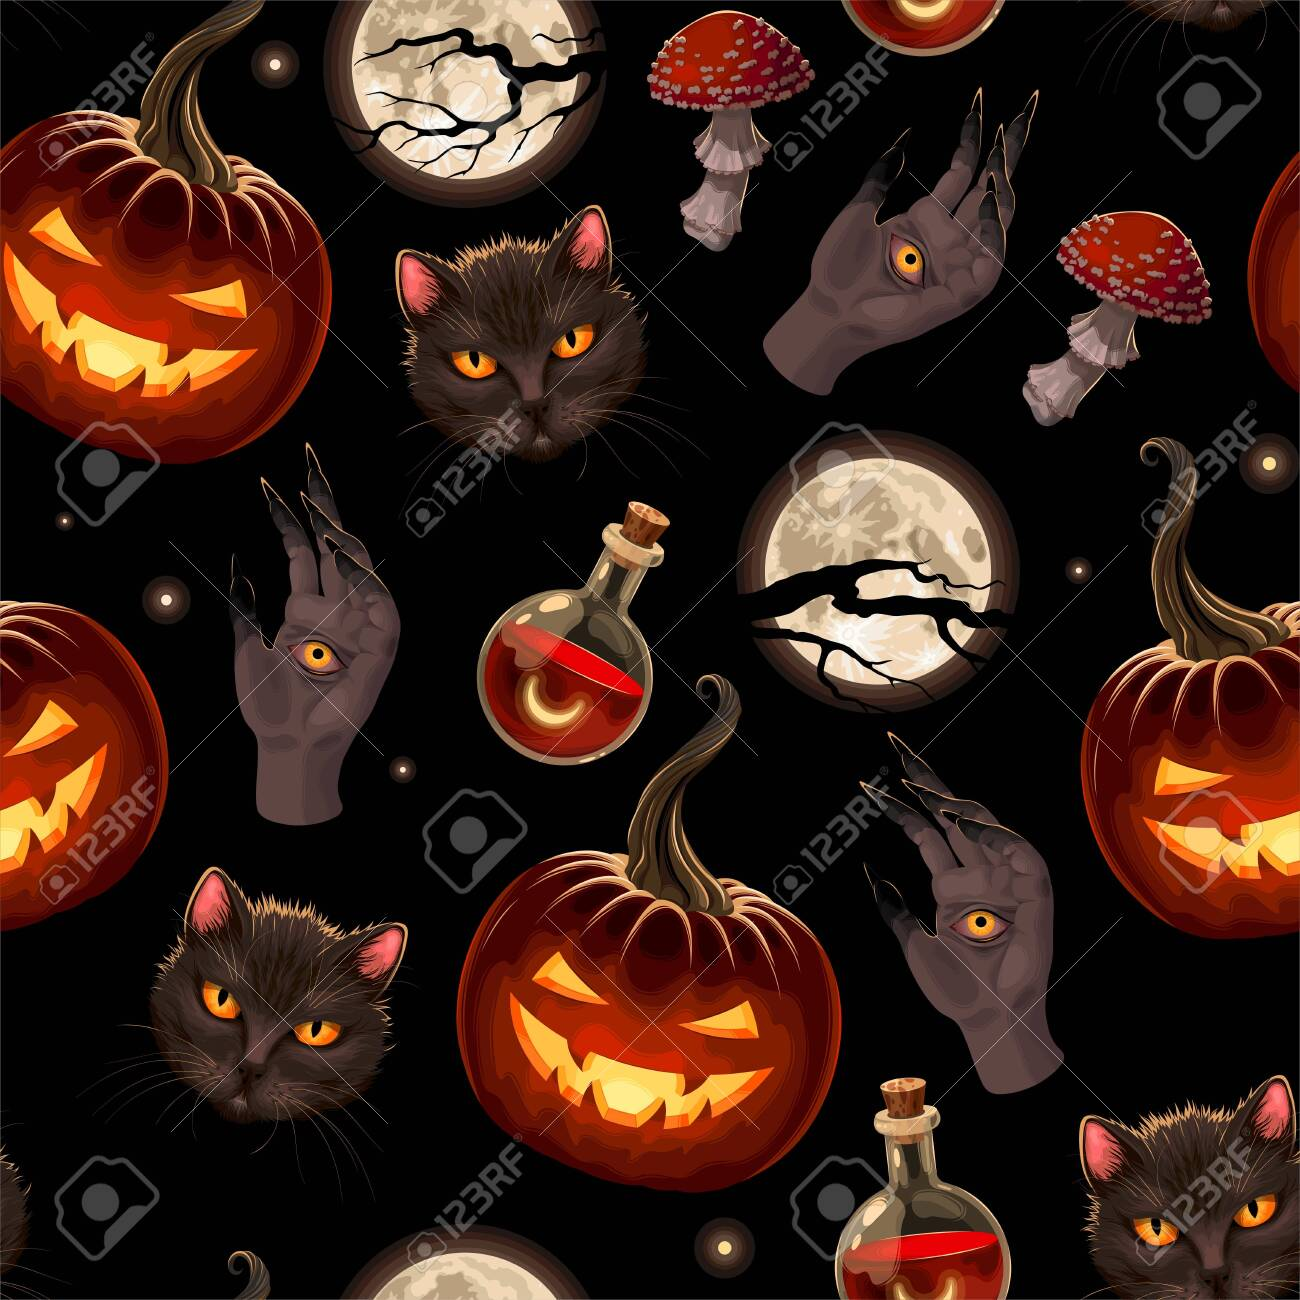 Vector seamless pattern for Halloween with pumpkin - 155865695